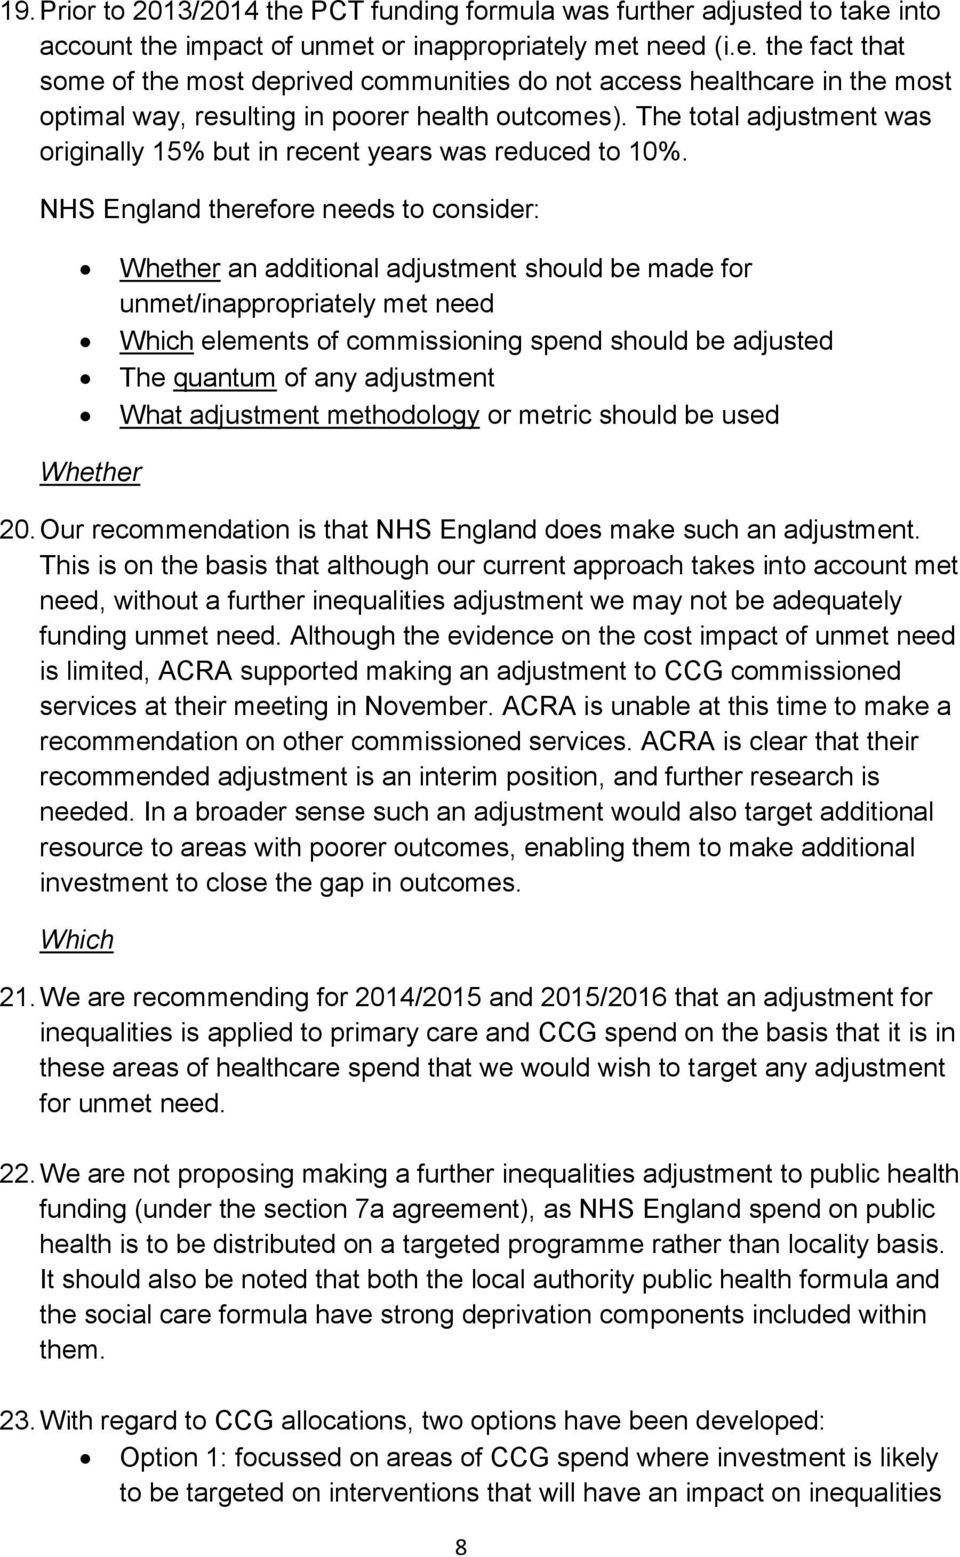 NHS England therefore needs to consider: Whether an additional adjustment should be made for unmet/inappropriately met need Which elements of commissioning spend should be adjusted The quantum of any